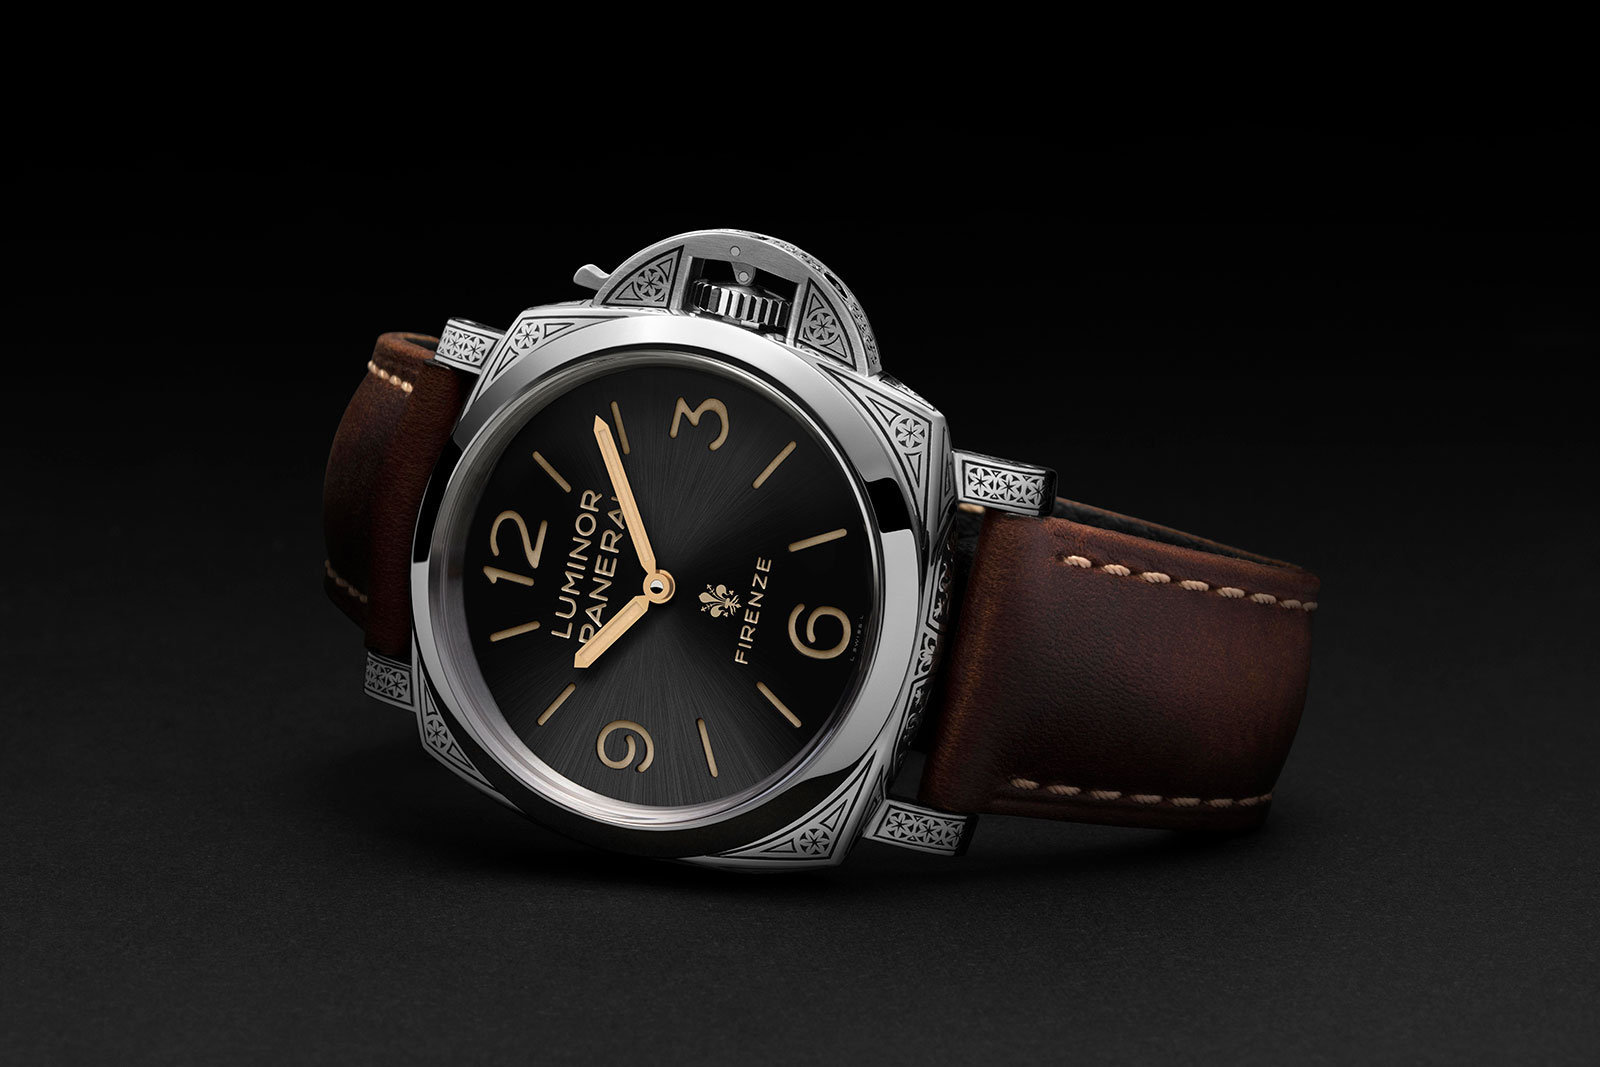 Panerai Luminor Firenze PAM972 5